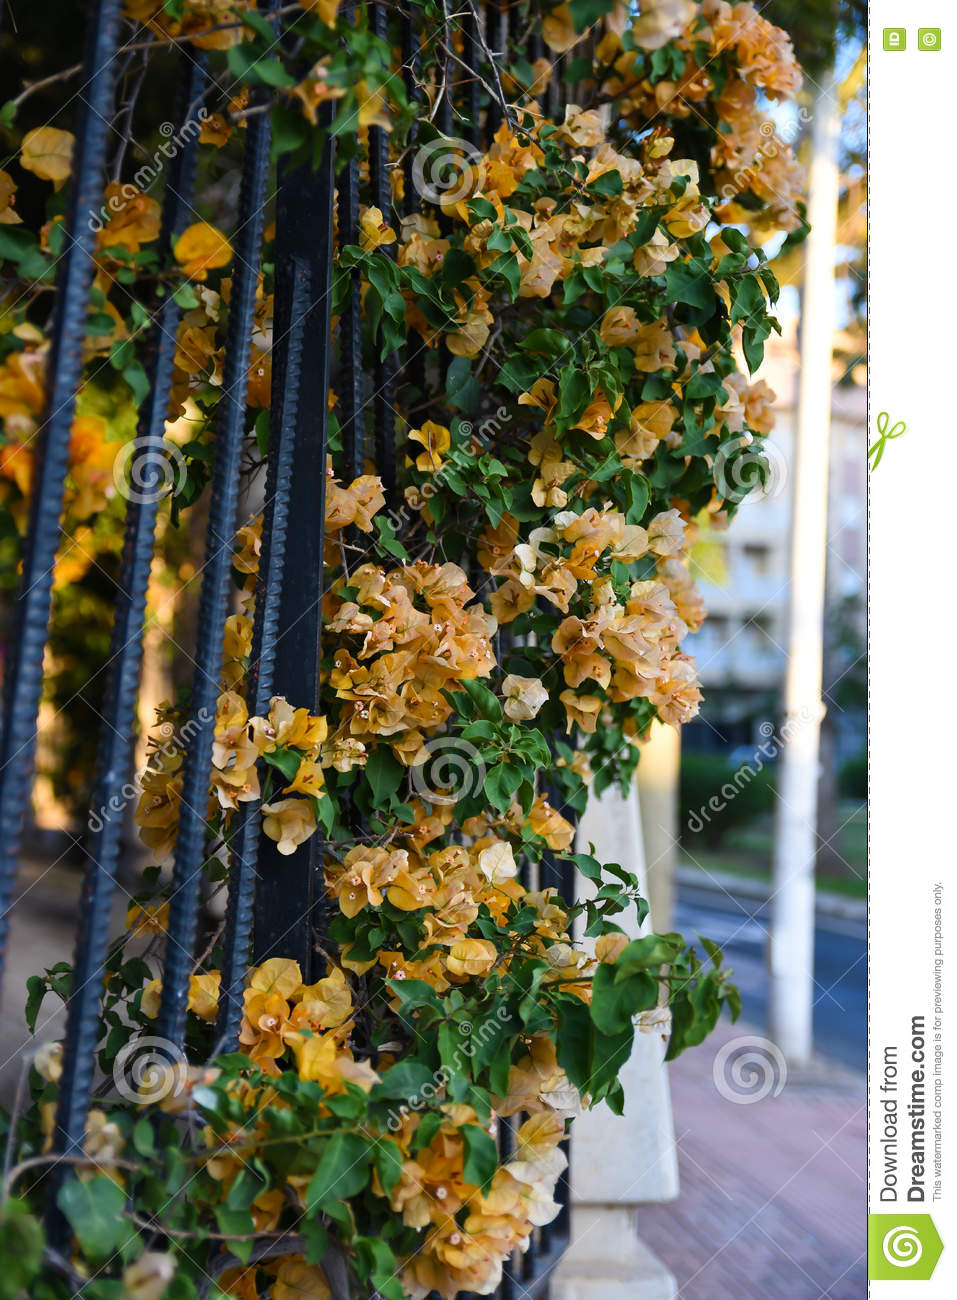 Yellow Vine Flowers With Green Leaves On Wrought Iron Railings Stock